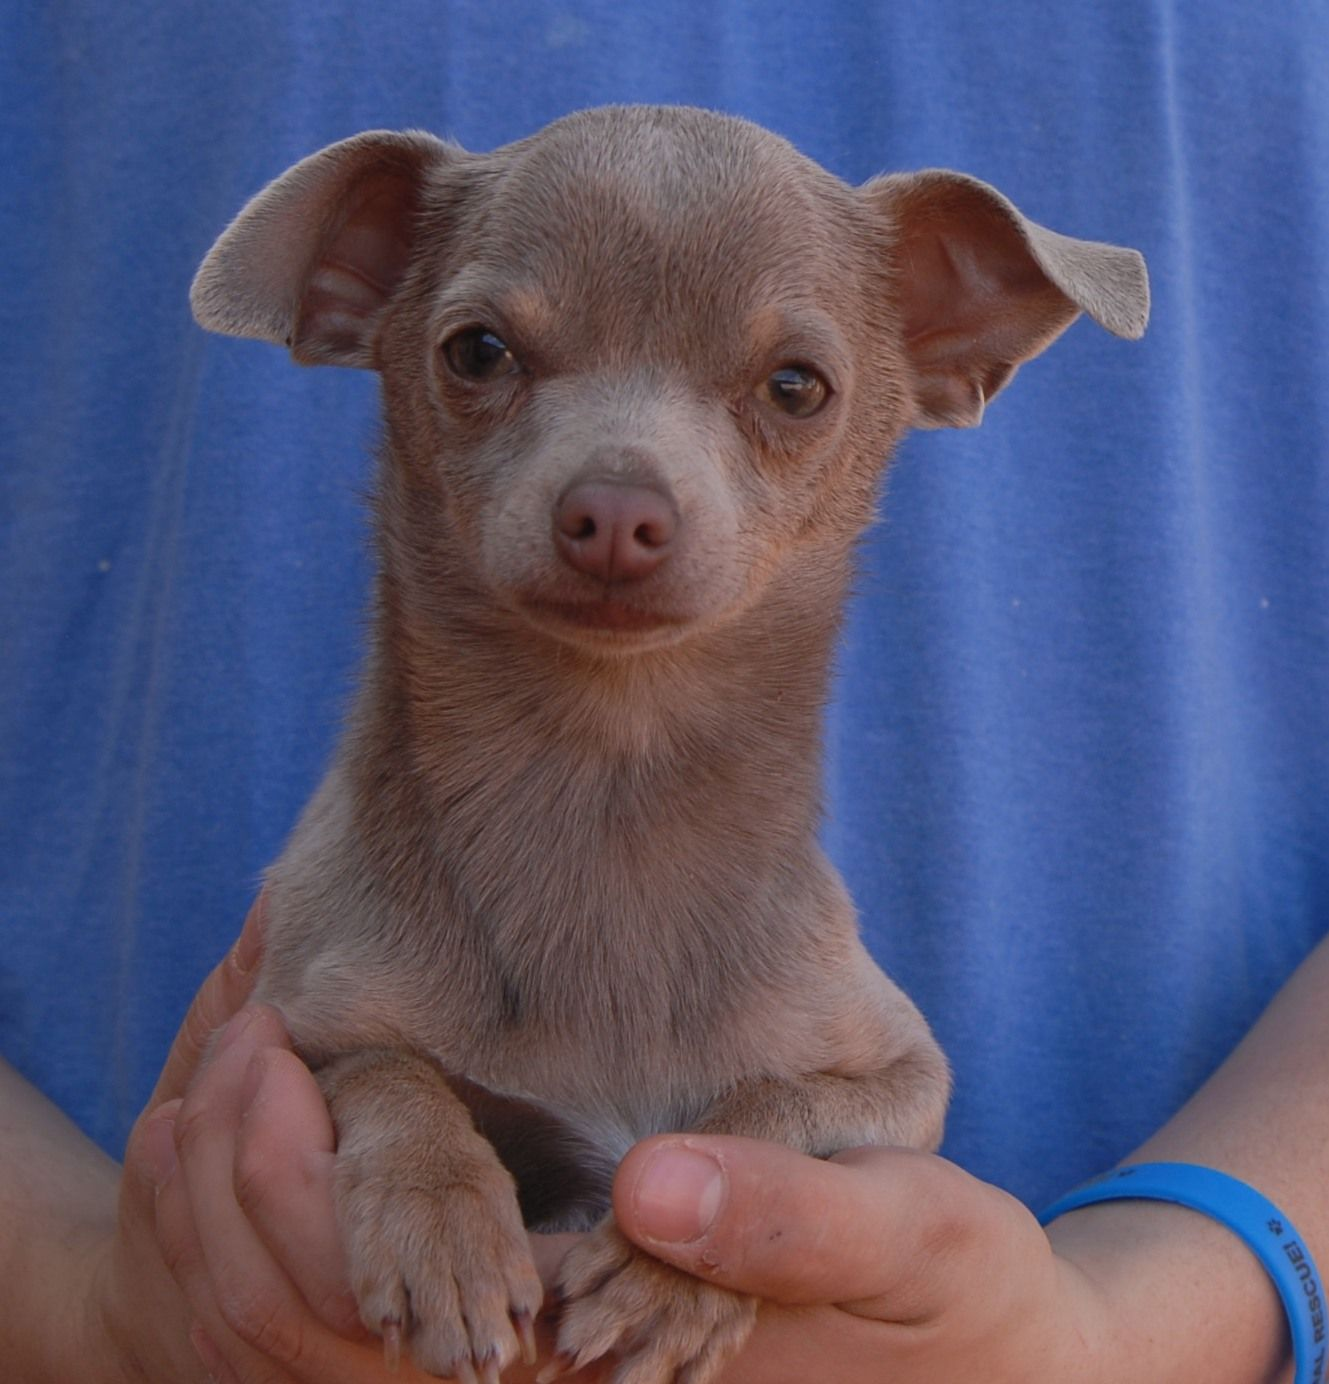 Orlando Is A Tiny 3 Pound Junior Puppy Who Wants To Feel Loved